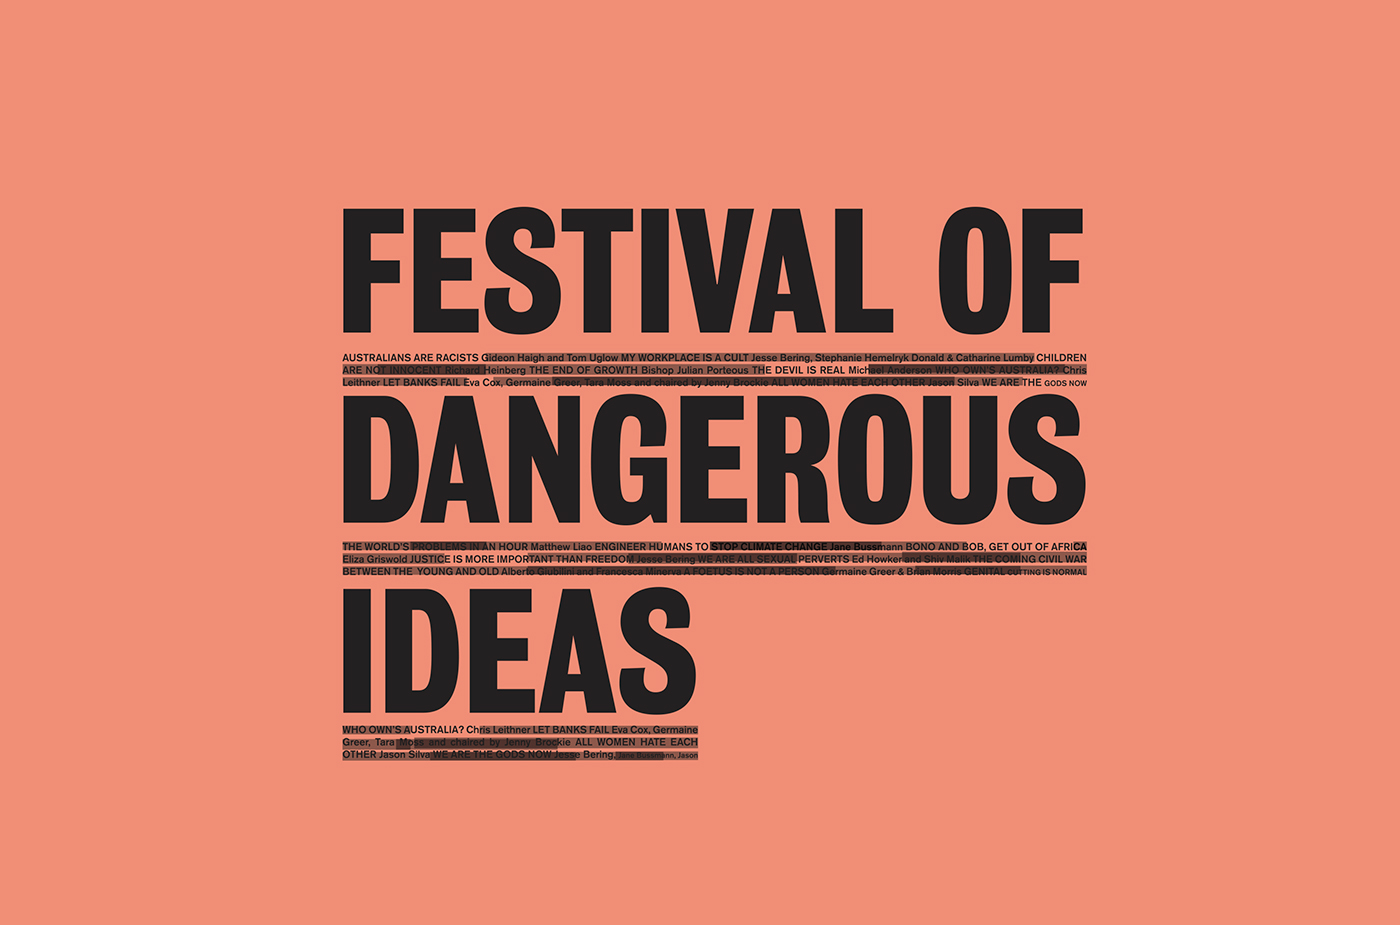 Festival of Dangerous Ideas 2011 & 2012